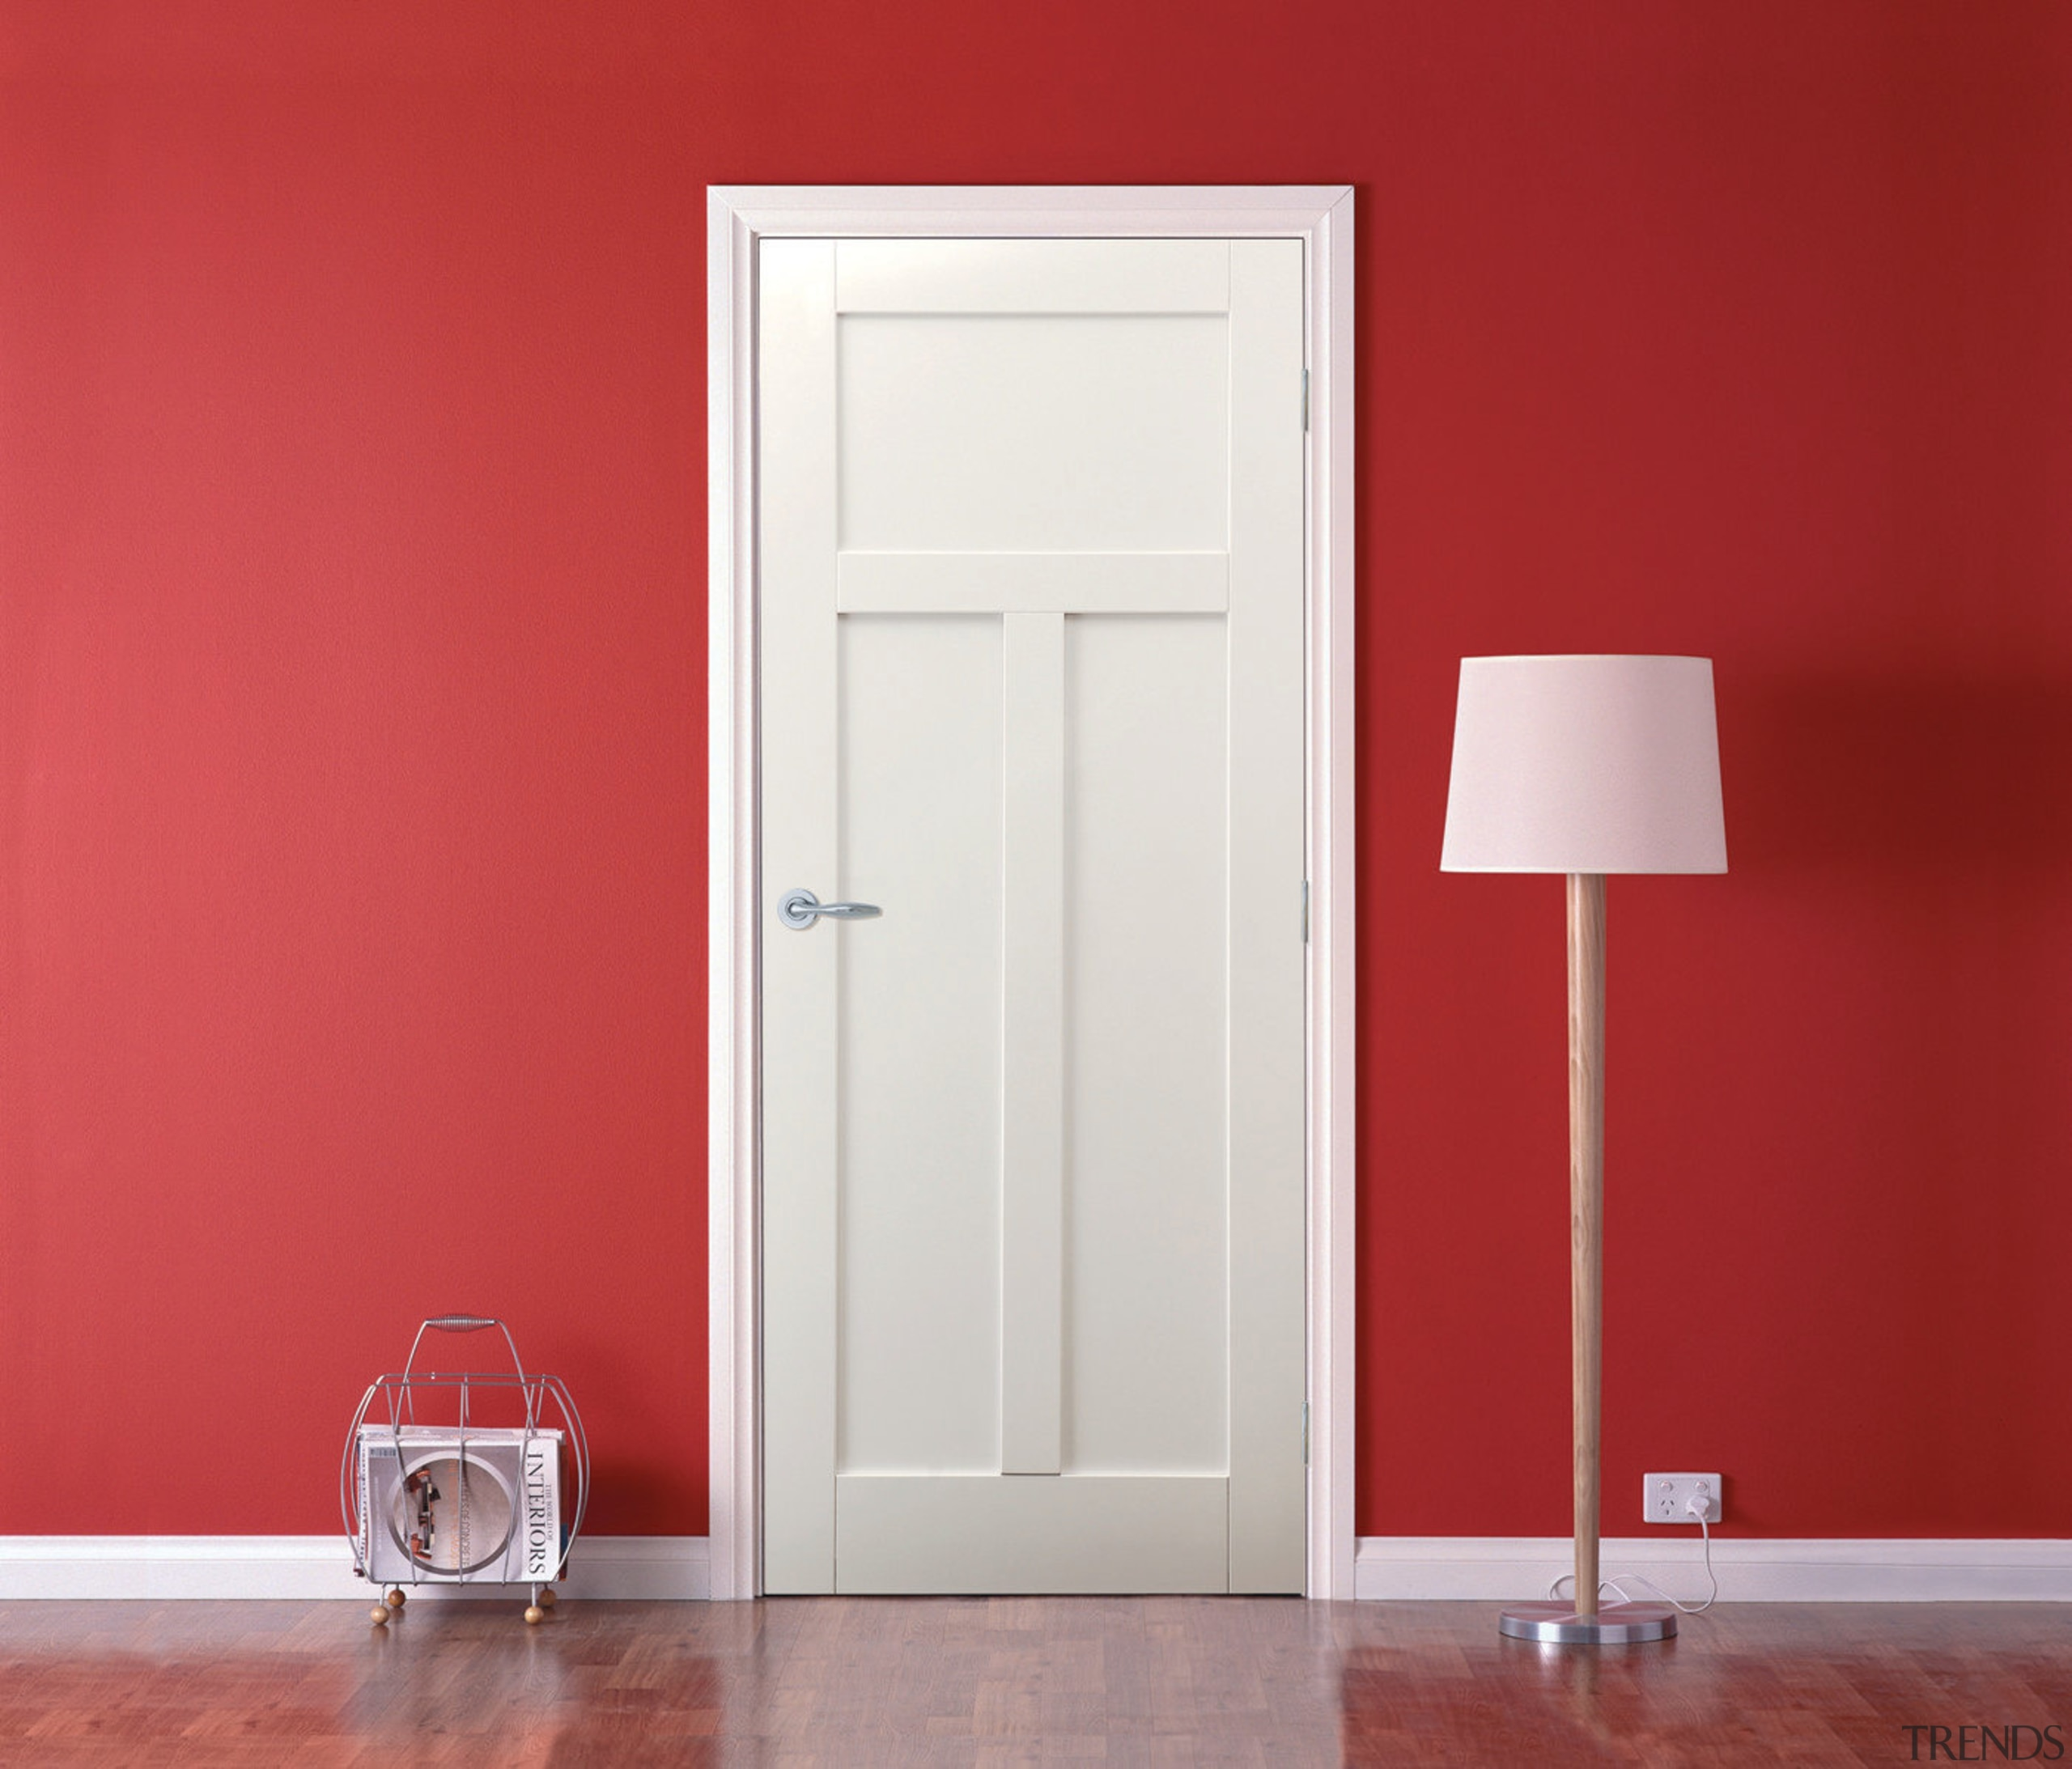 f072d700e3132 The Moda interior door is loosely modelled on the shaker door style.